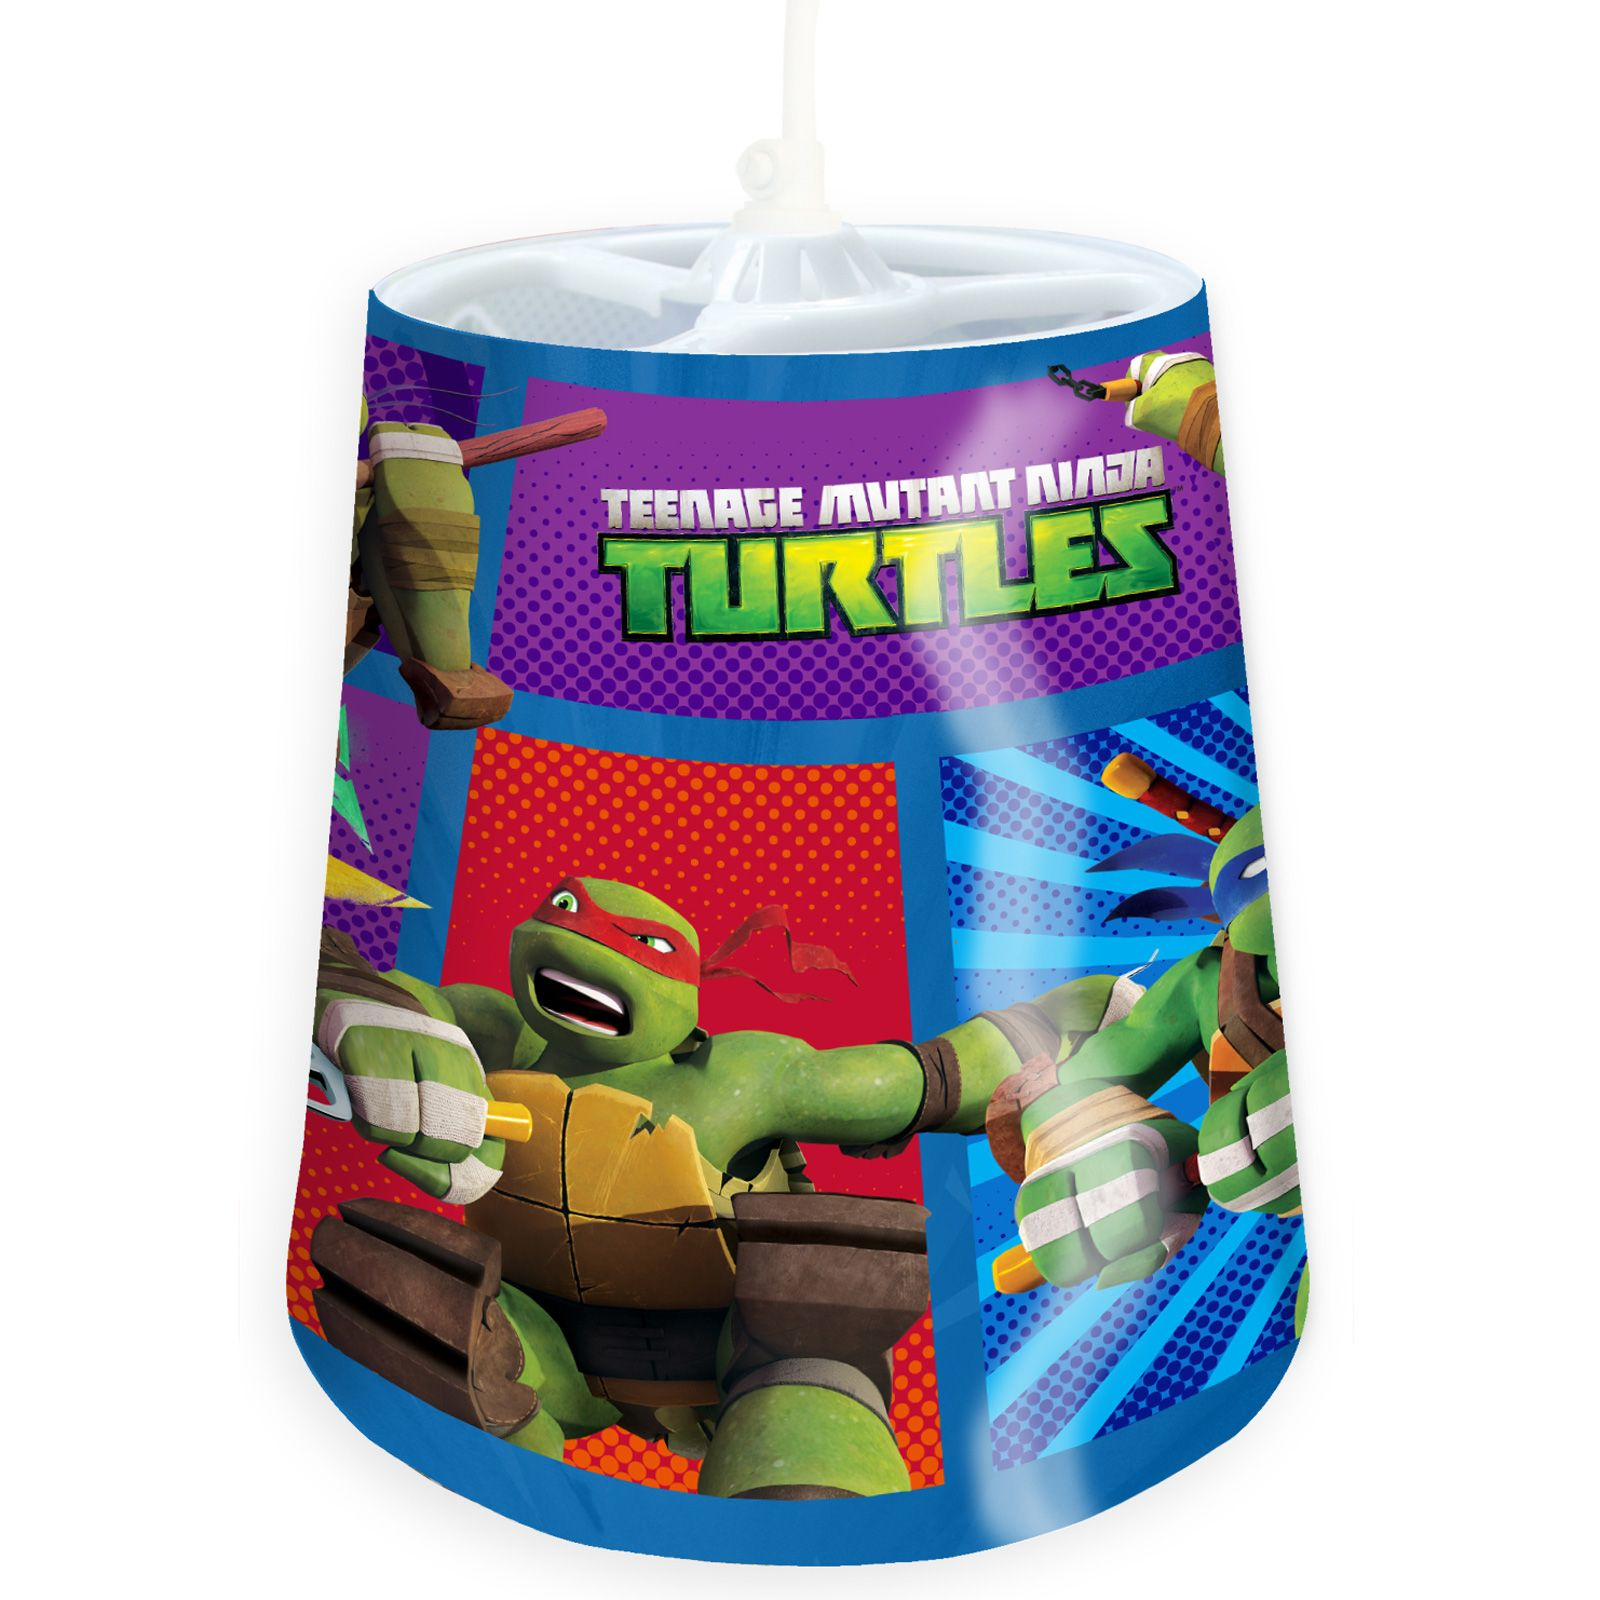 Kids Bedroom Lamp teenage mutant ninja turtles kids bedroom lighting lamp